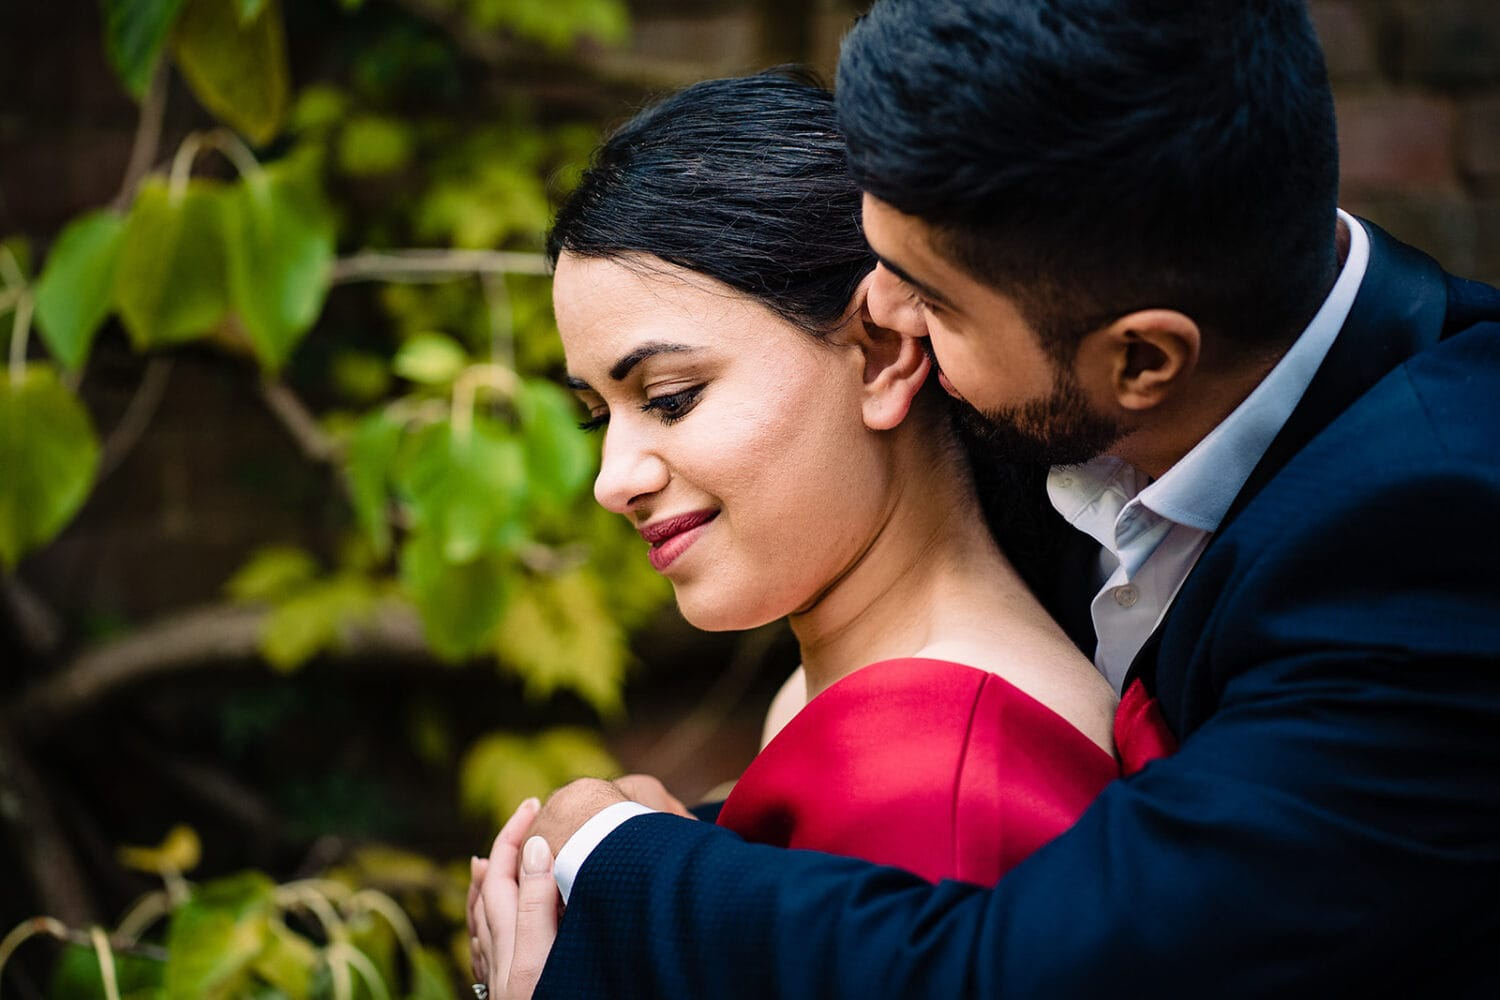 Asian Groom whispers in bride's ear as they embrace at London's Hampstead Pergola